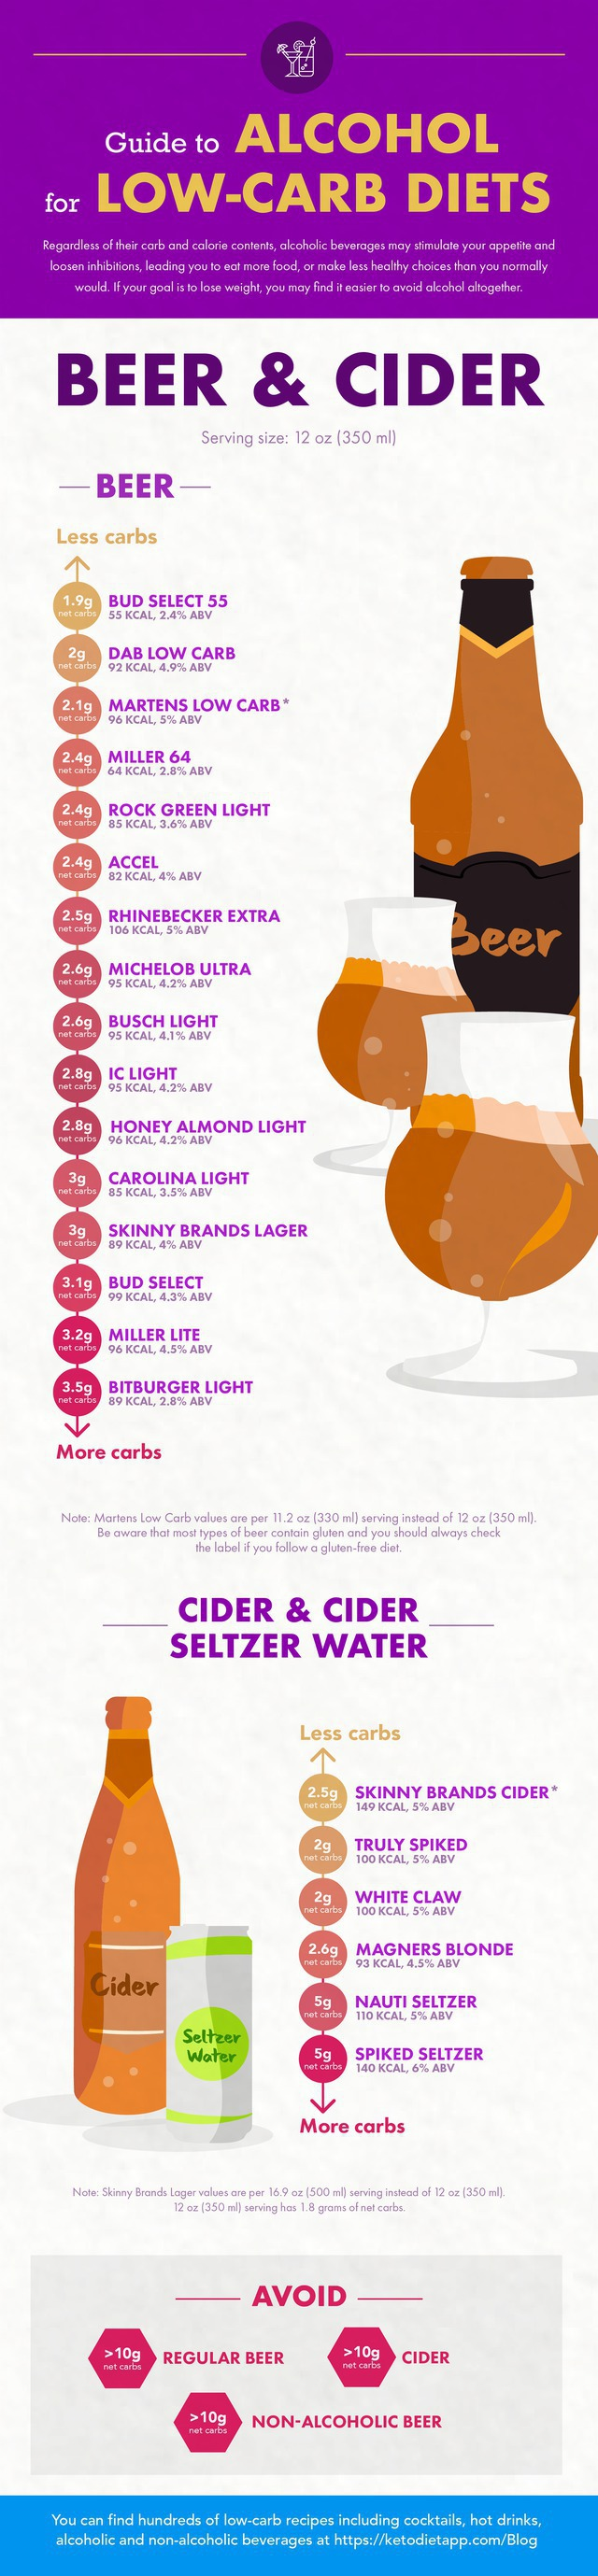 Alcohol Guide - Beer & Cider